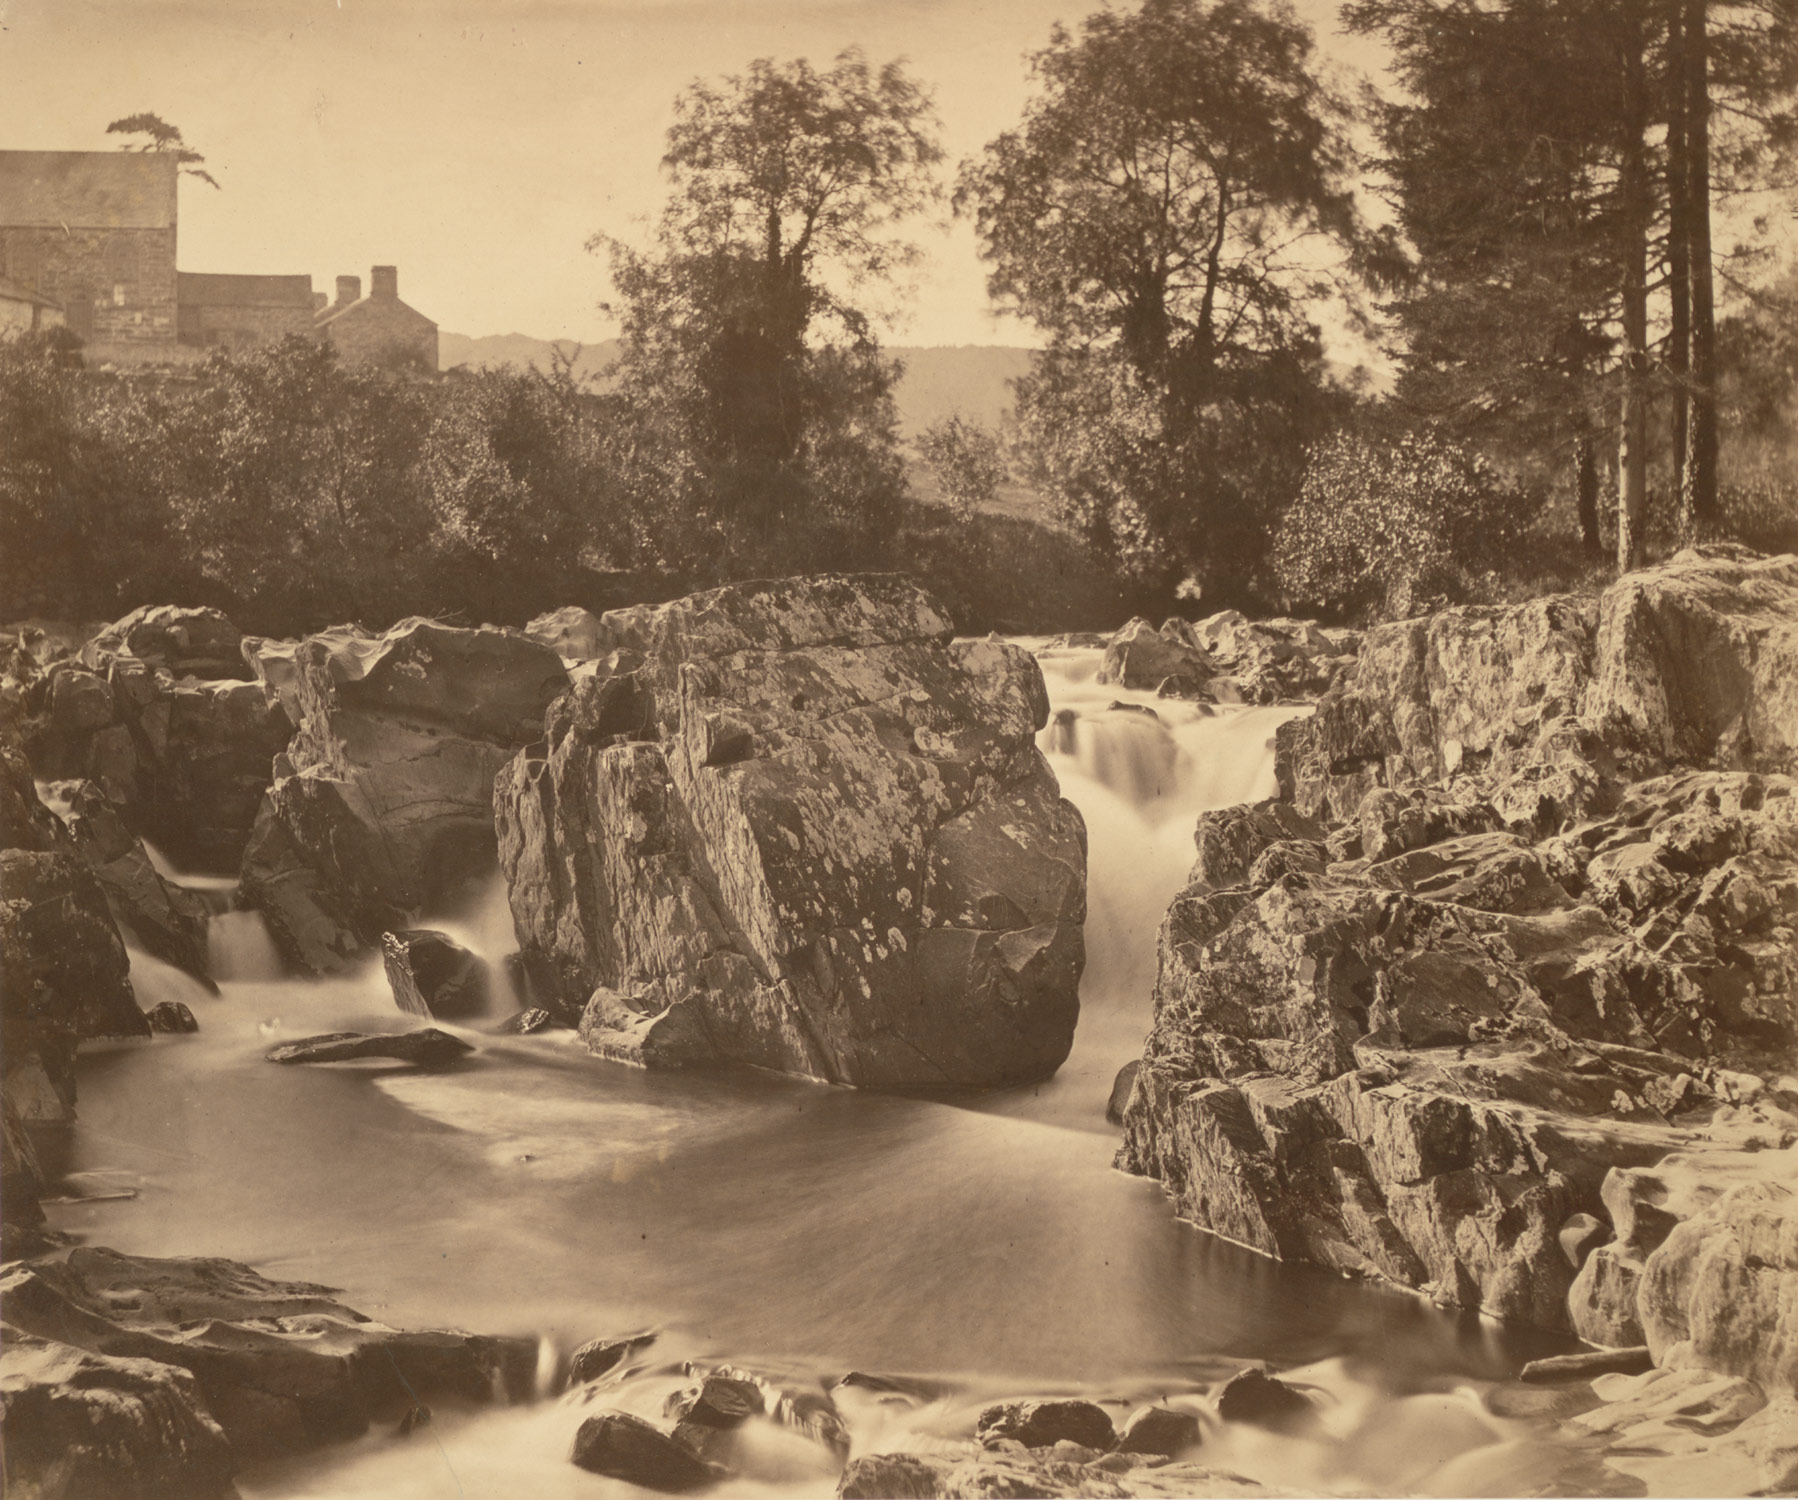 Falls of the Llugwy, at Pont-y-Pair